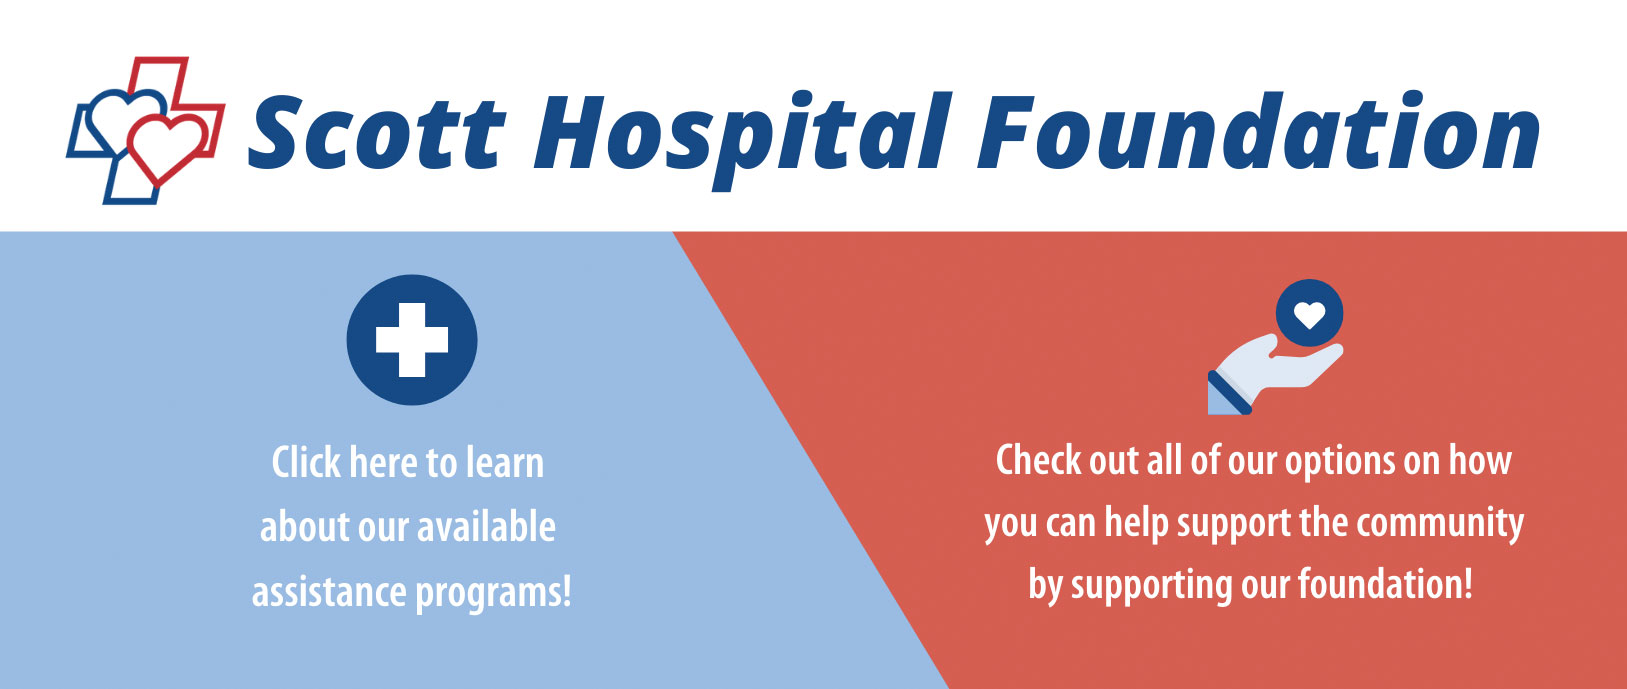 Scott Hospital Foundation. lick her to learn about our available assistance programs. Check out all of our options on how you can help support the community by supporting our foundation!